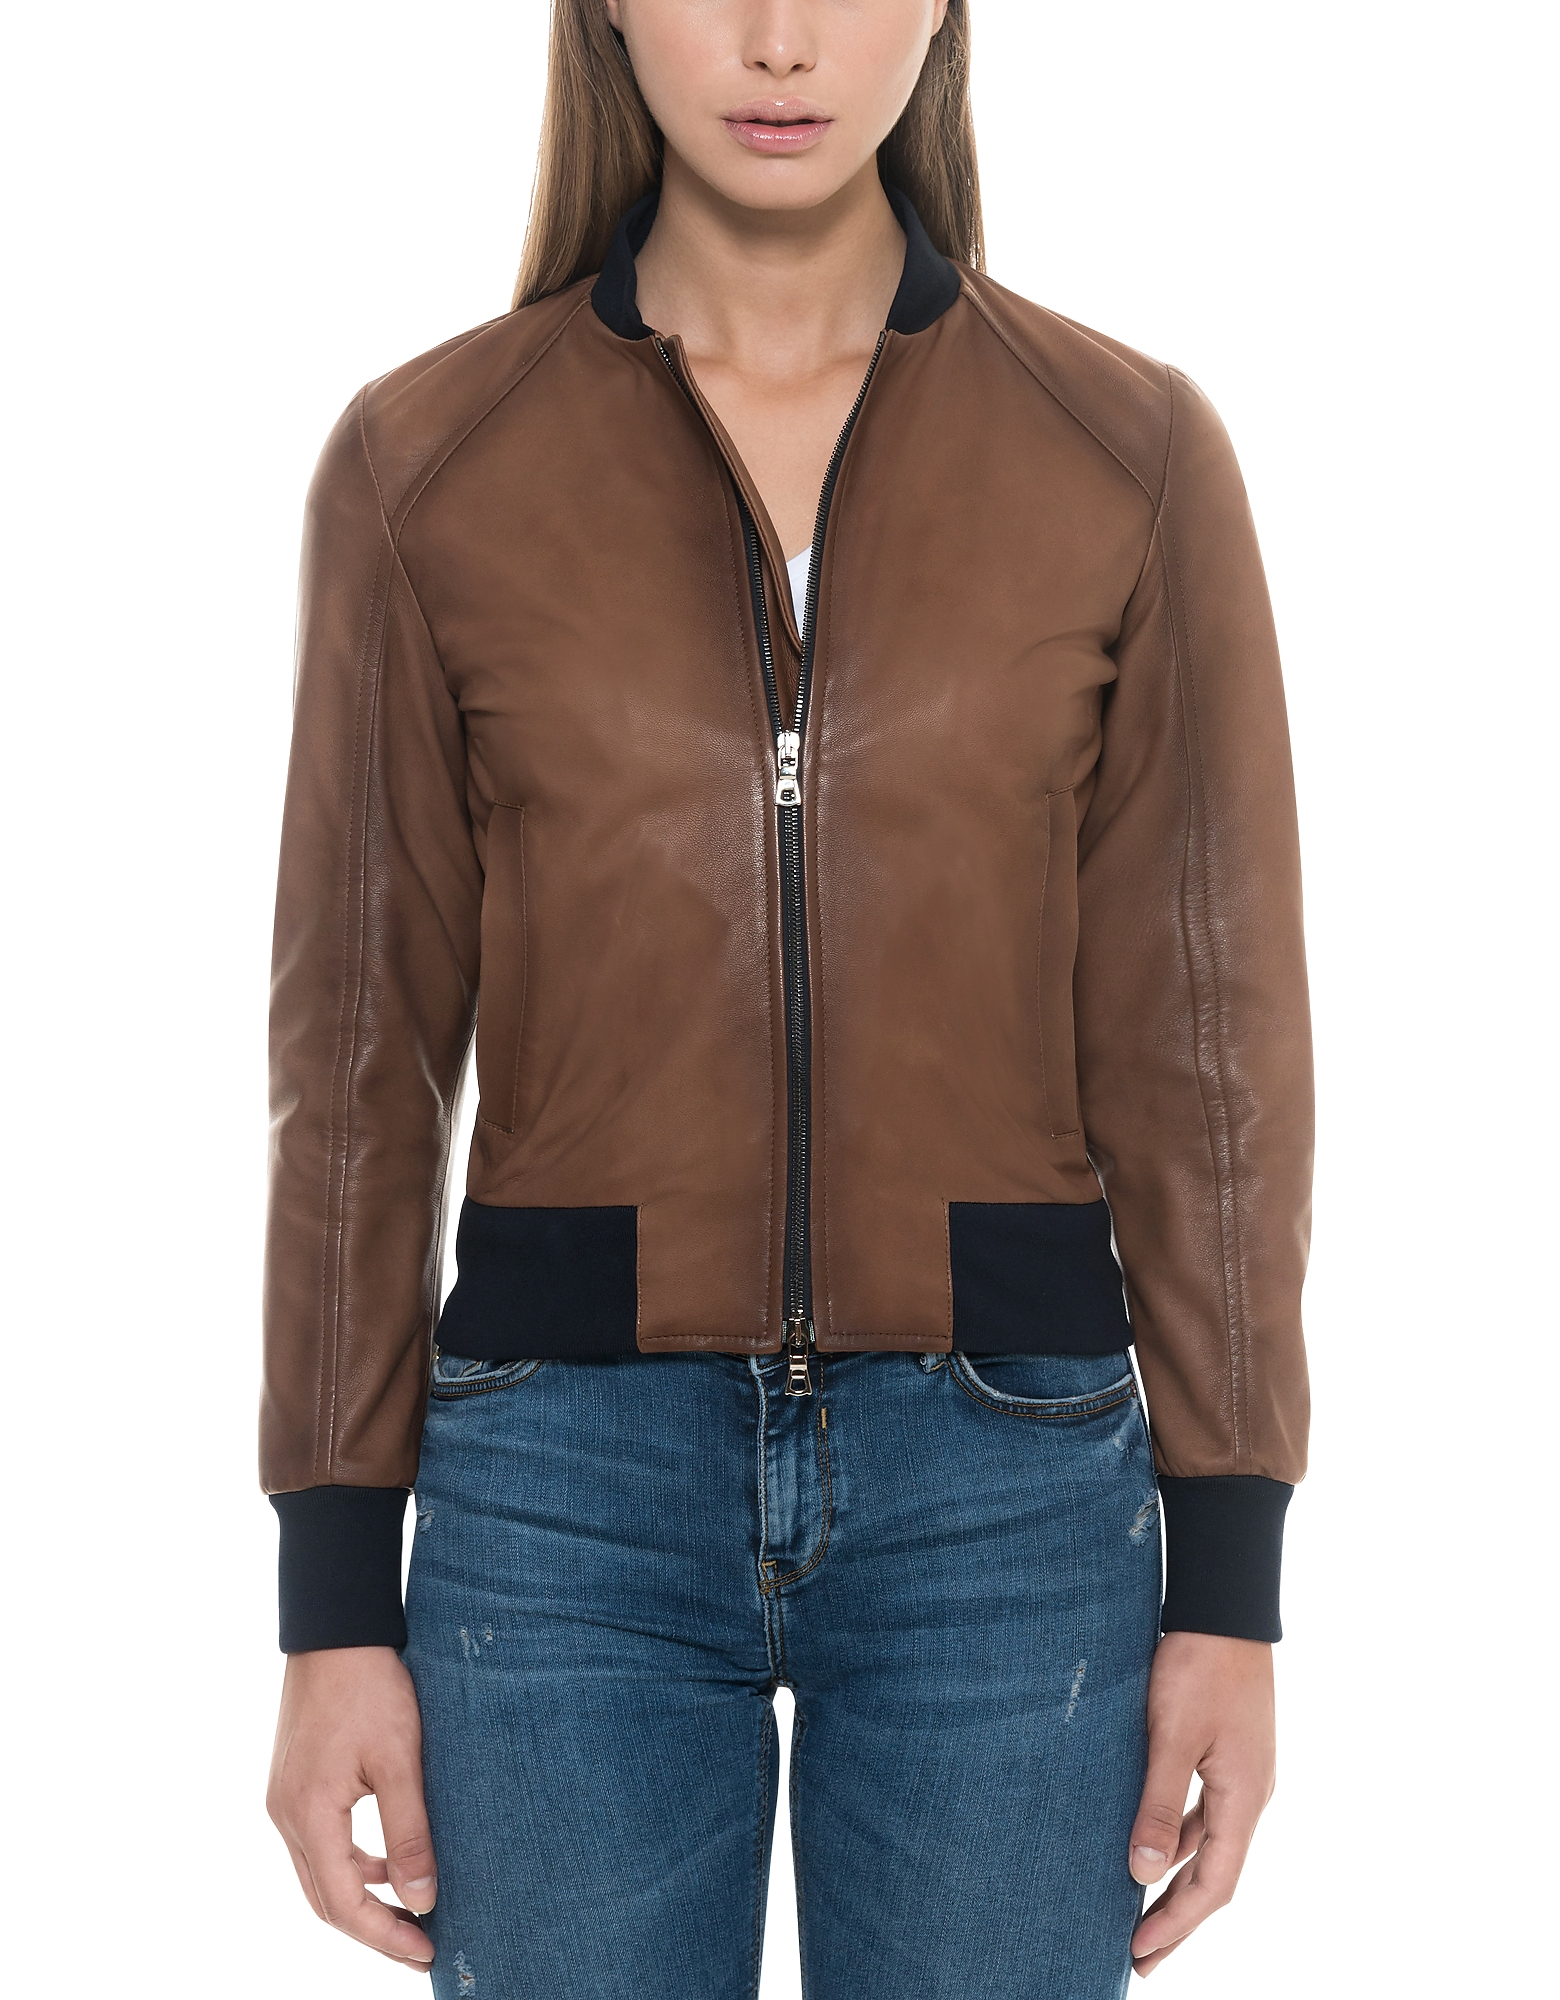 Forzieri Designer Leather Jackets, Brown Leather Women's Bomber Jacket